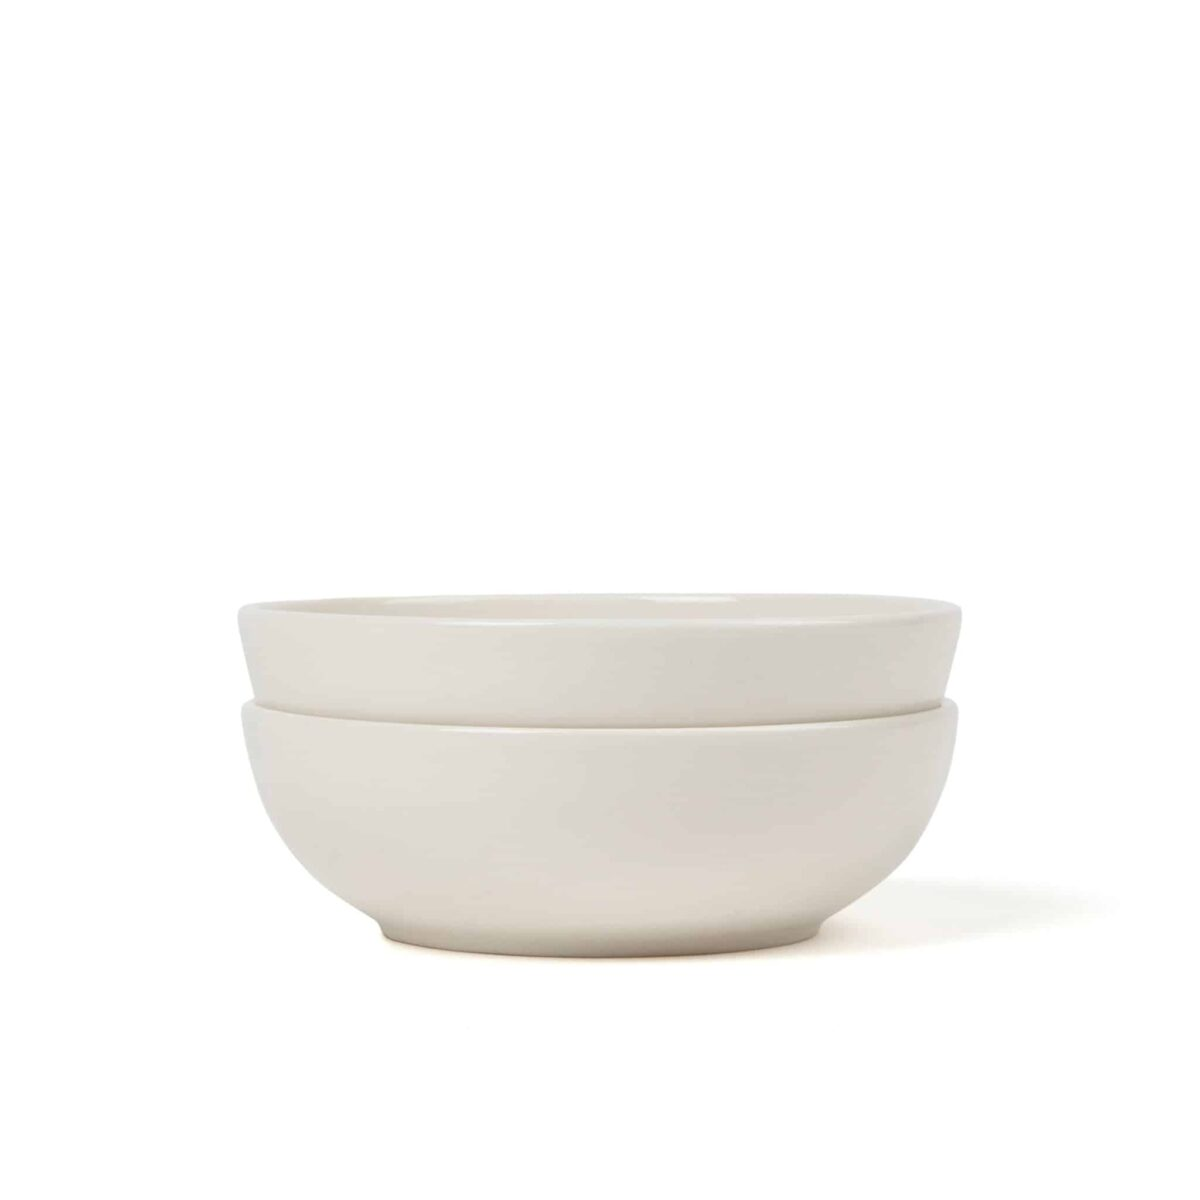 Another-country-pottery-big-bowl-natural-002